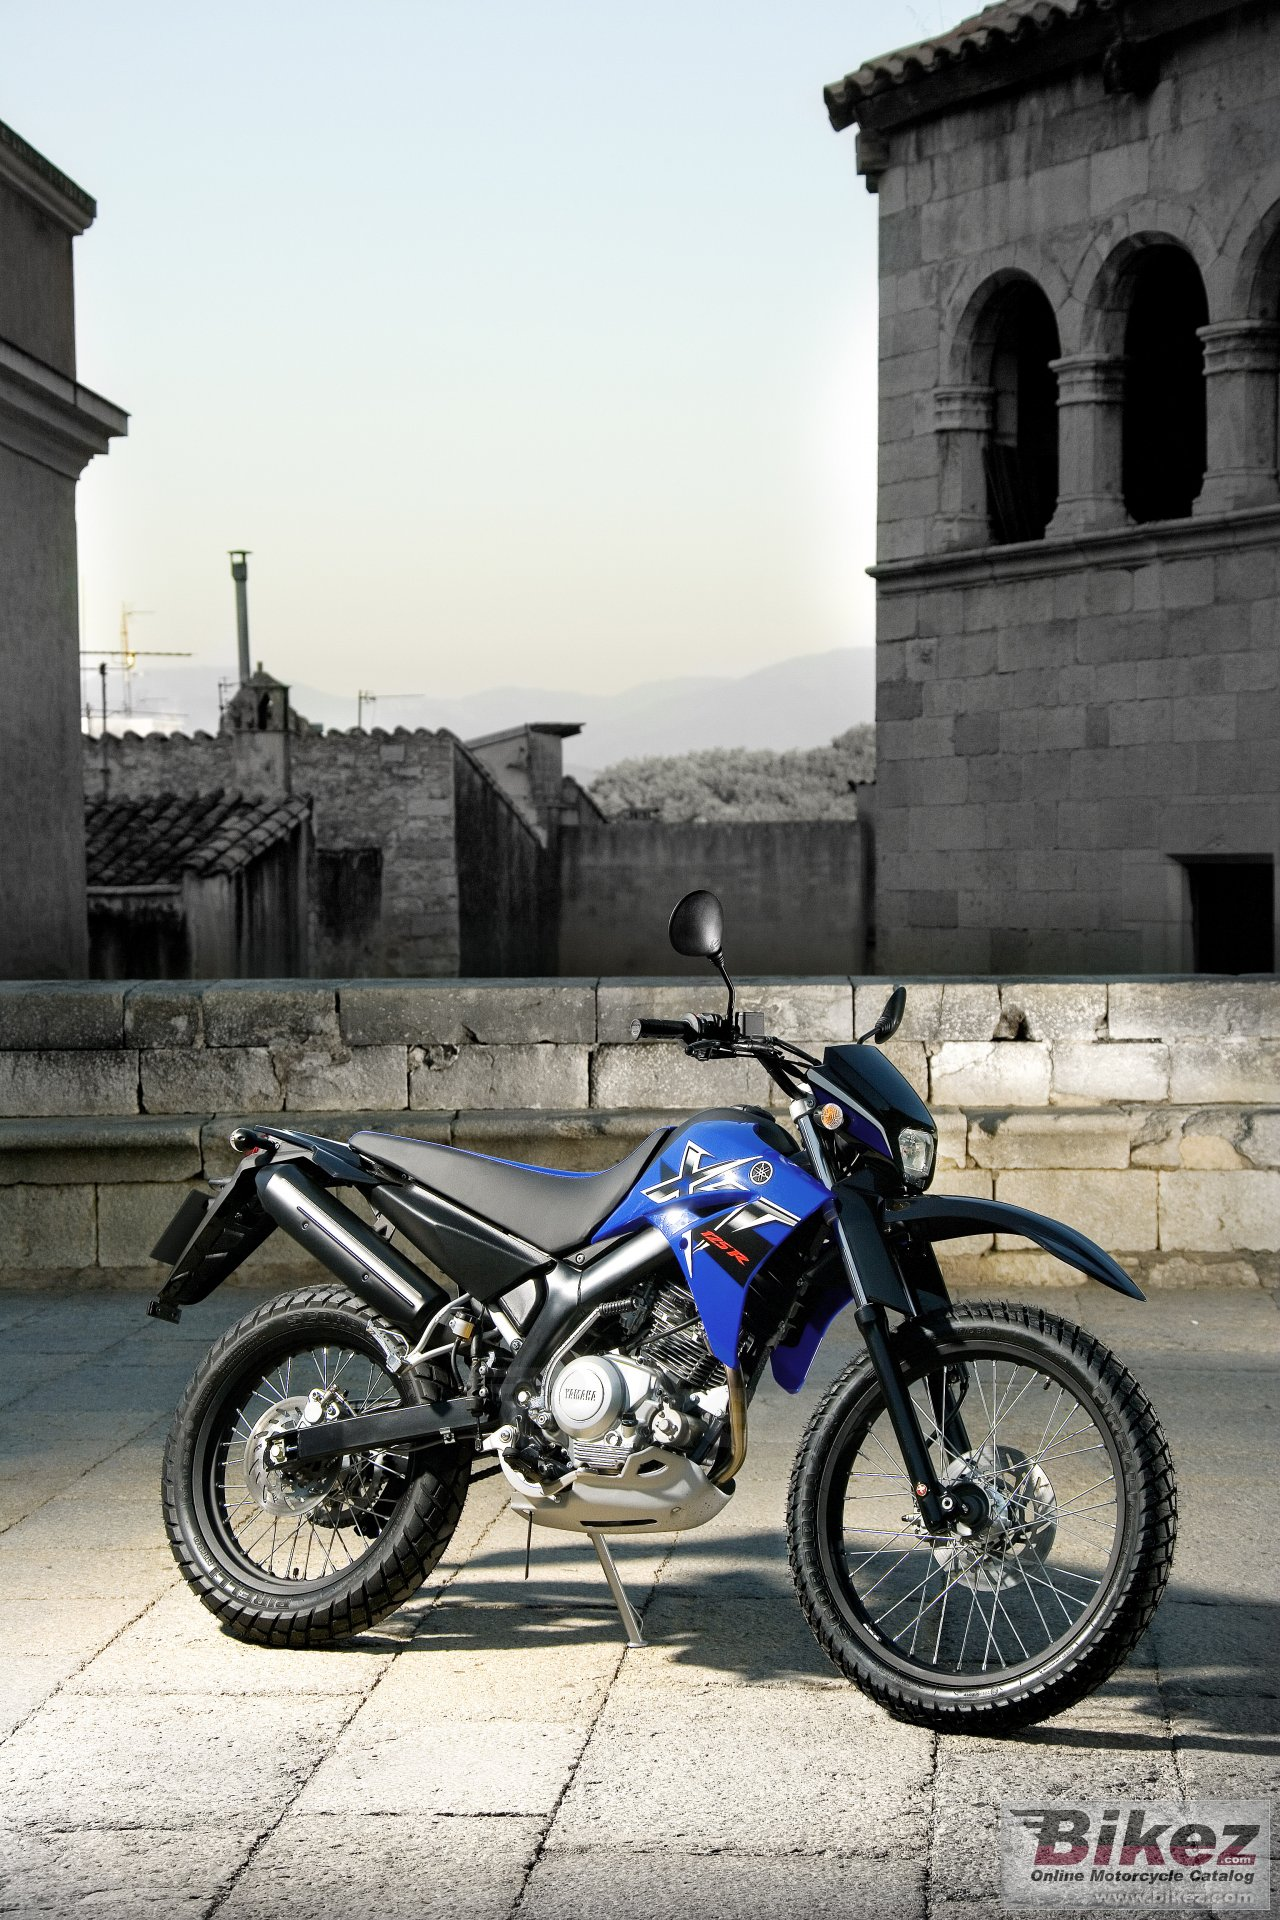 Big Yamaha xt125r picture and wallpaper from Bikez.com